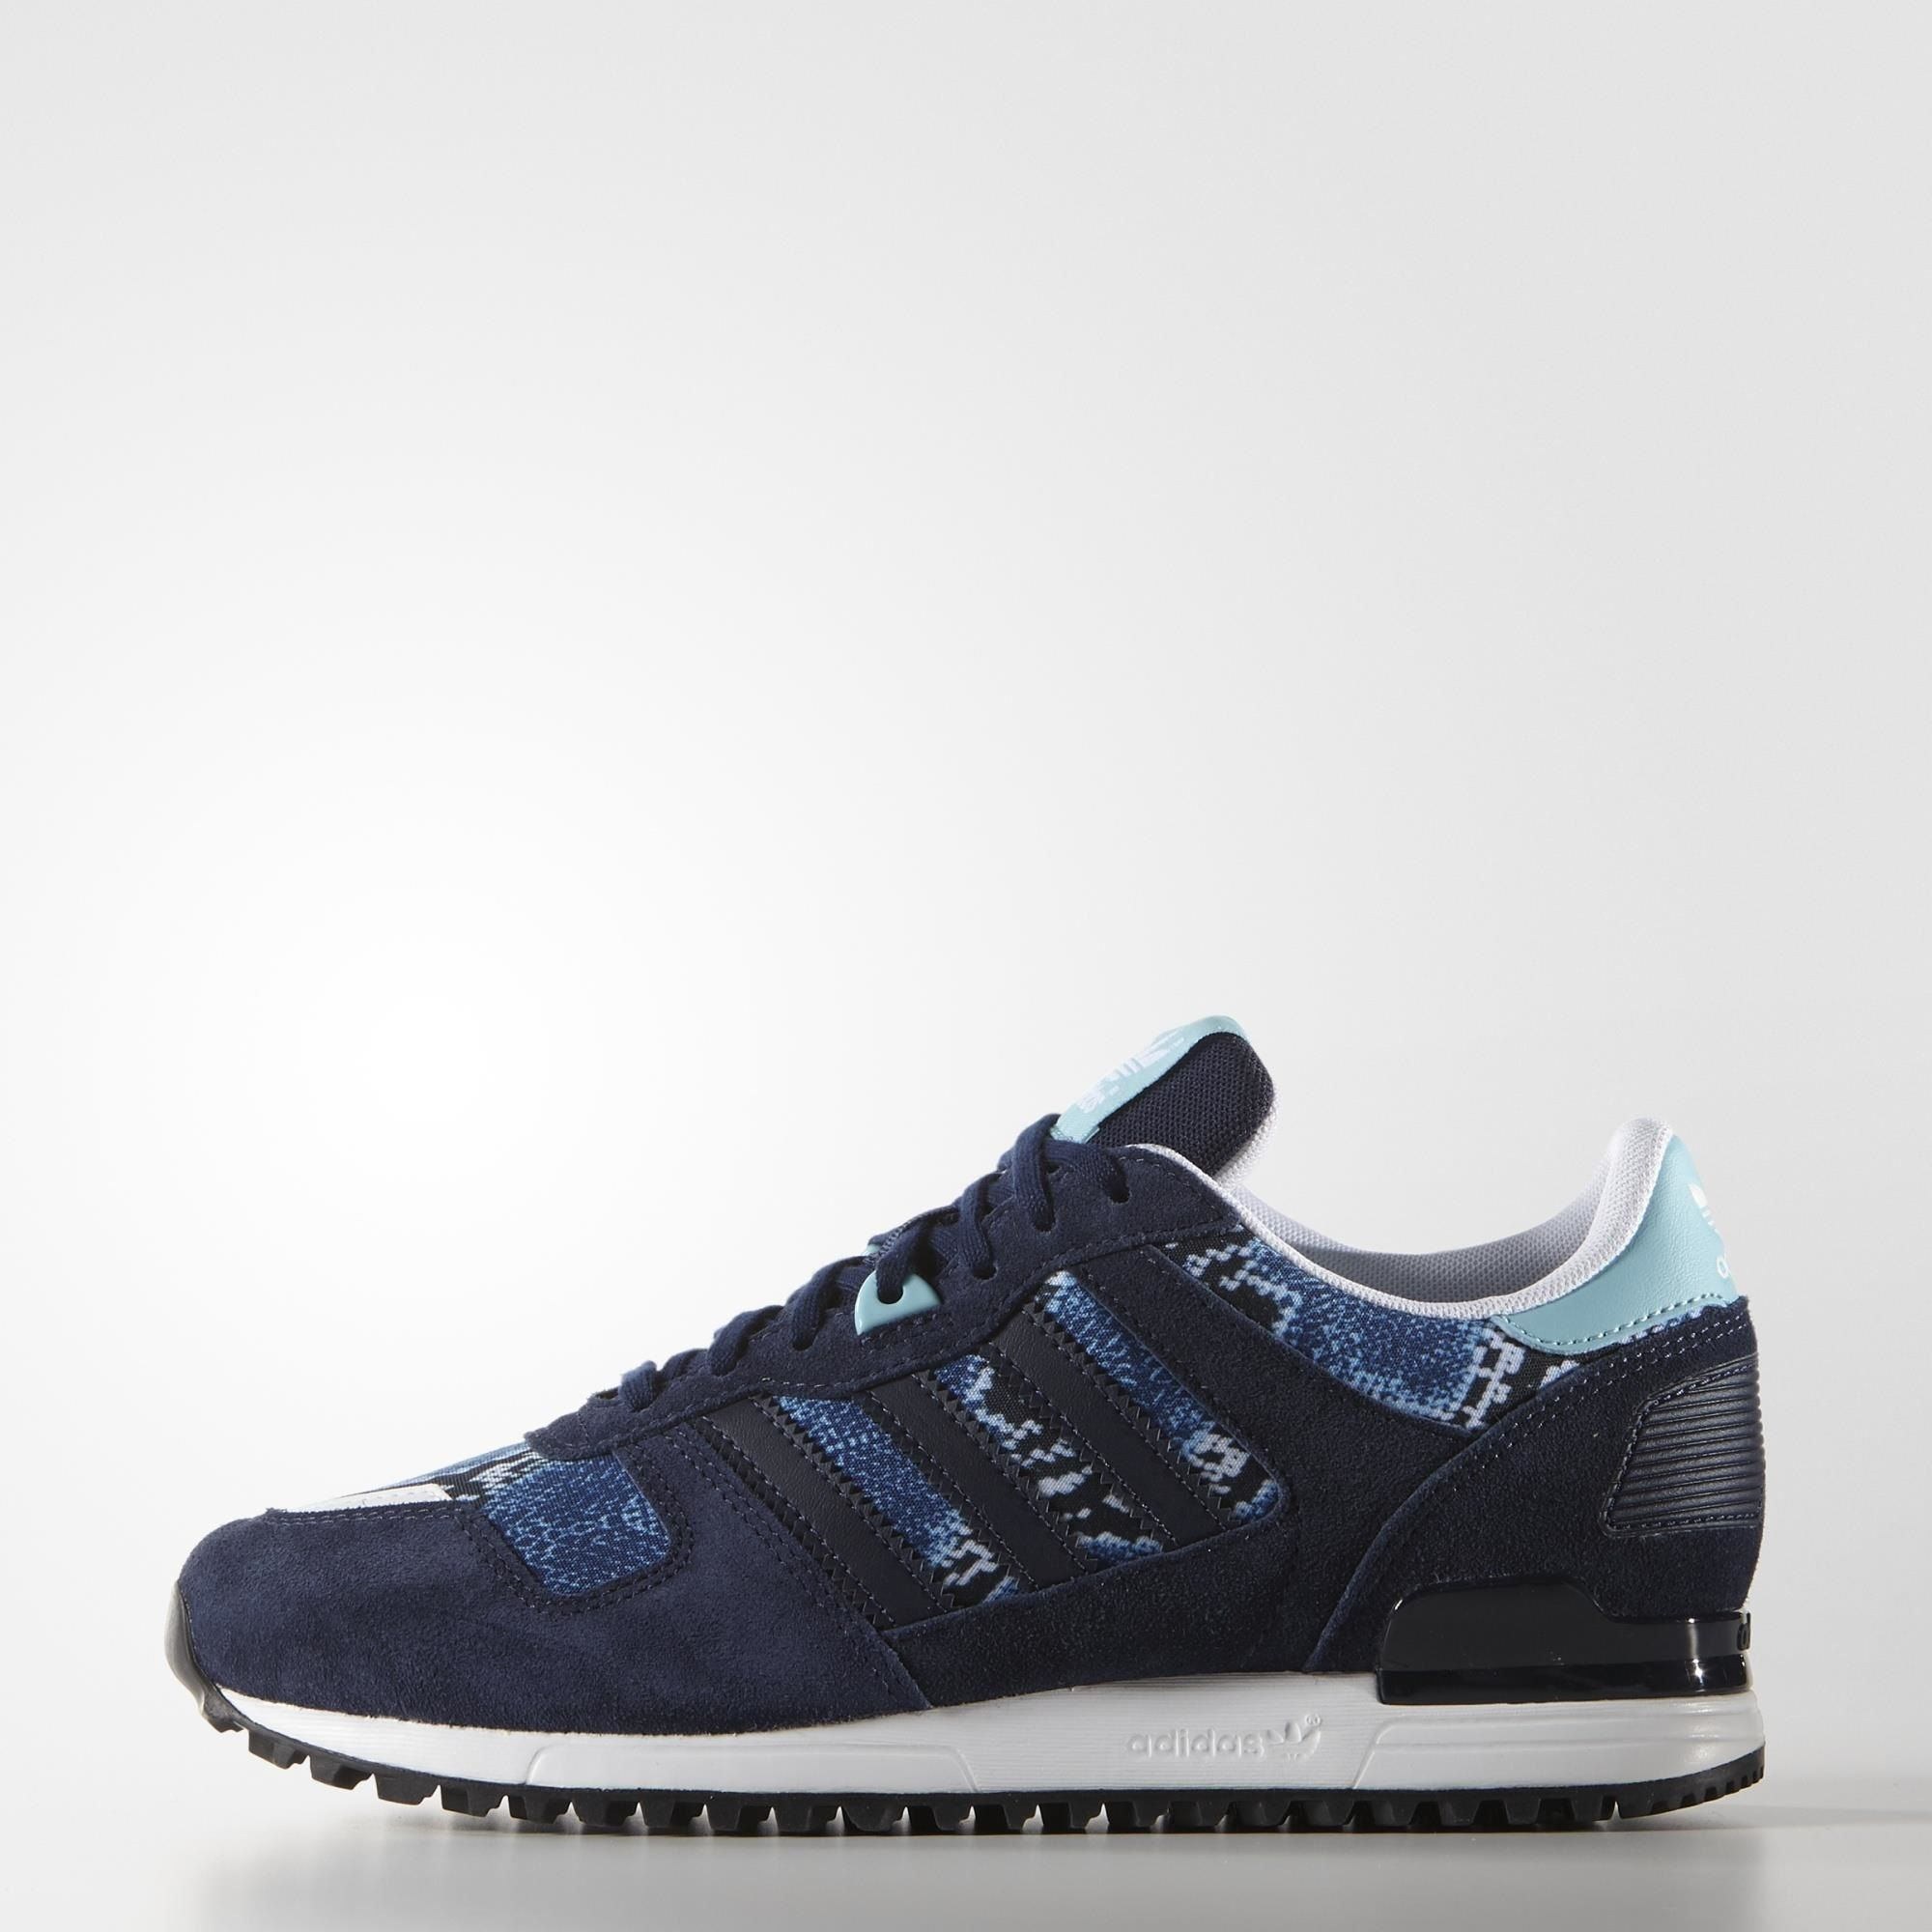 Shop our official selection of adidas Blue - Shoes - ZX at adidas.